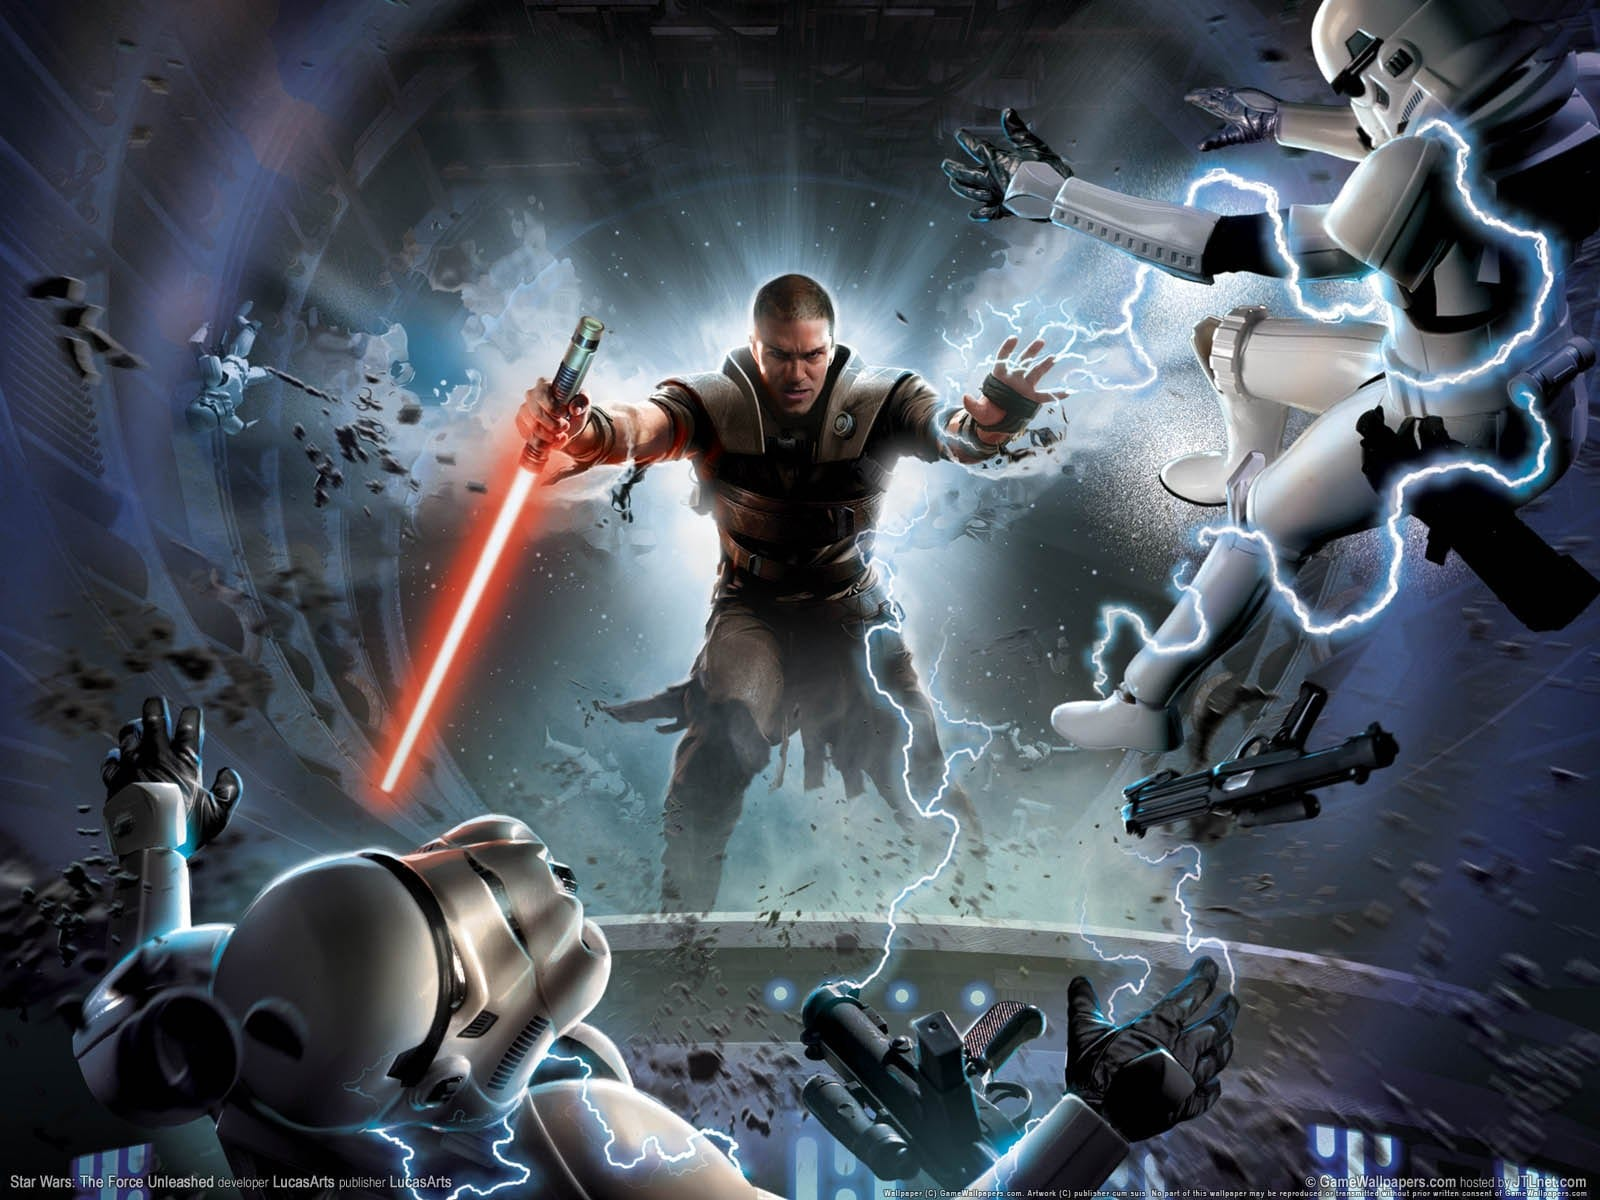 LucasArts readying new star wars game